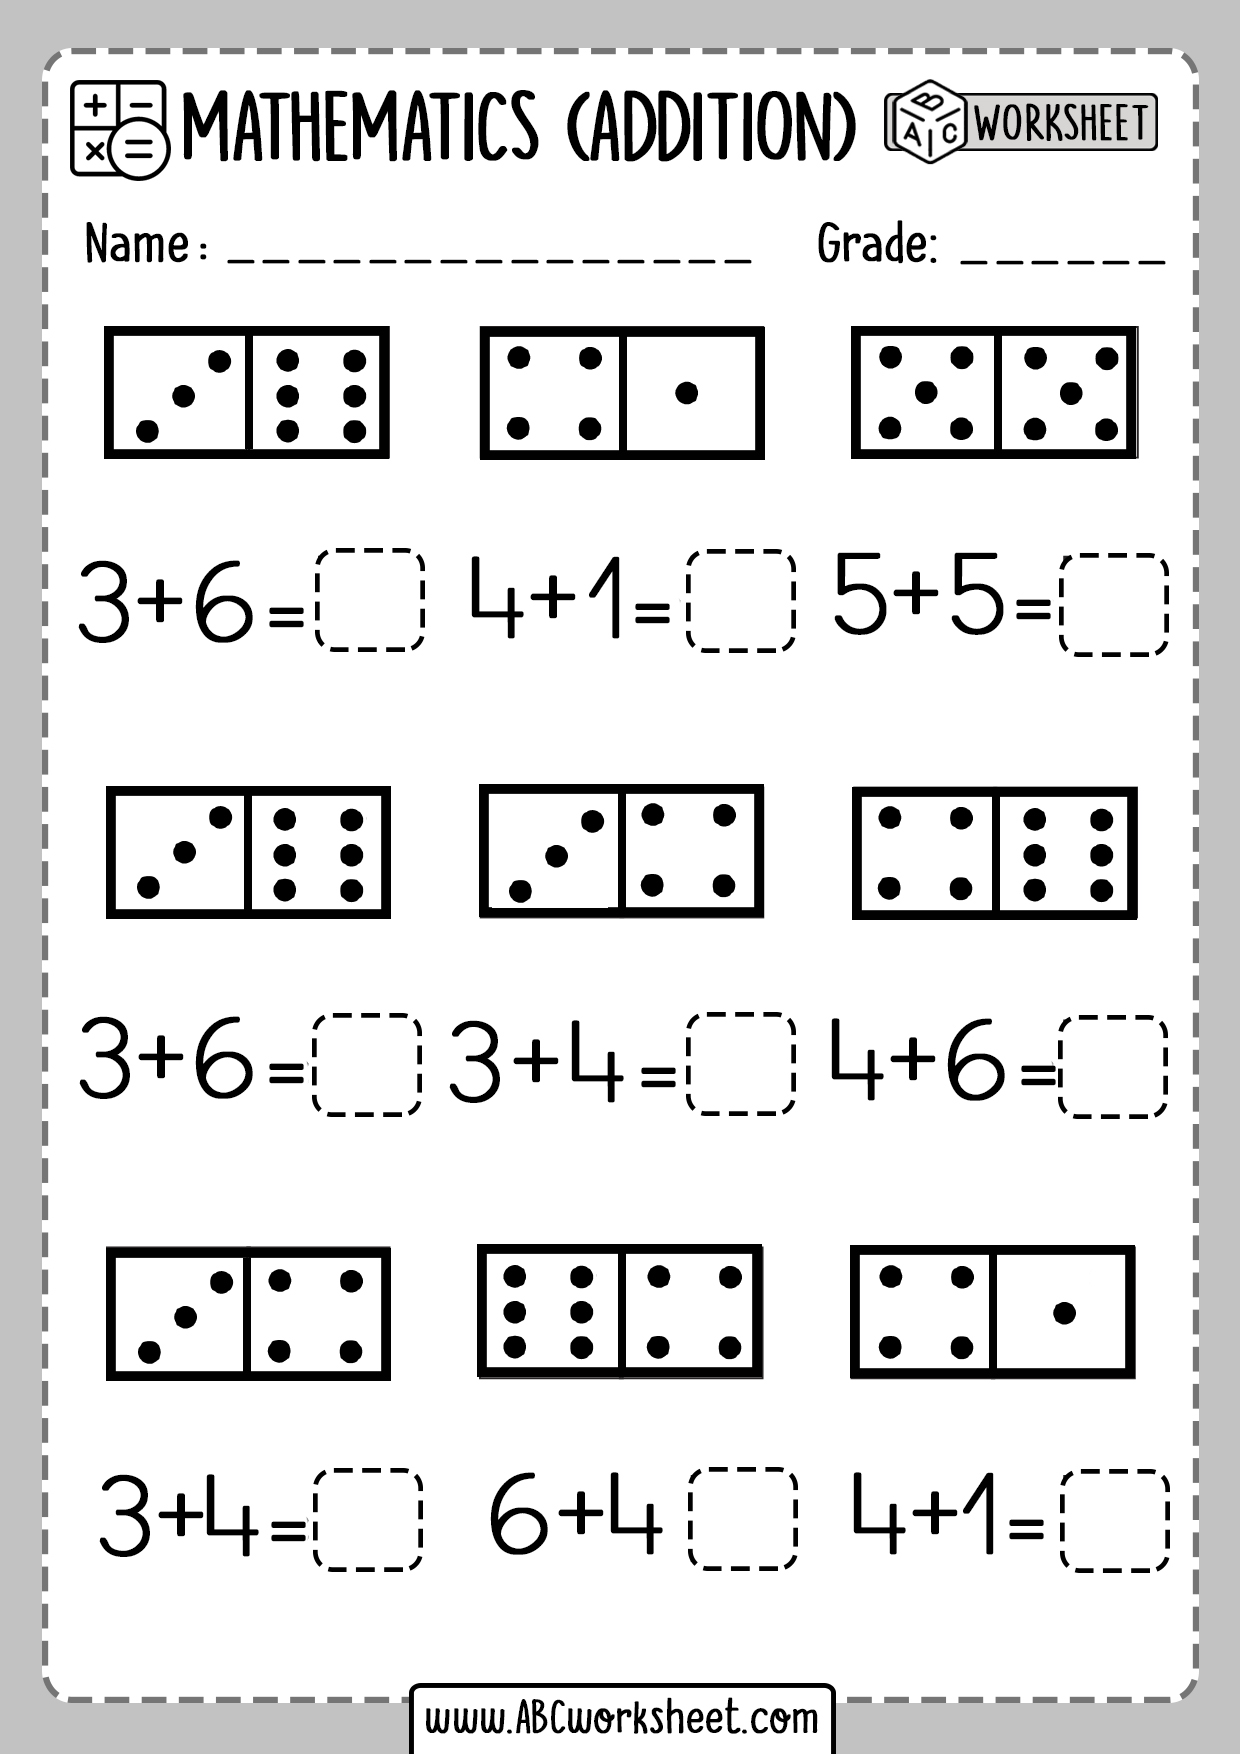 Simple Addition Worksheets With Pictures For Kindergarten